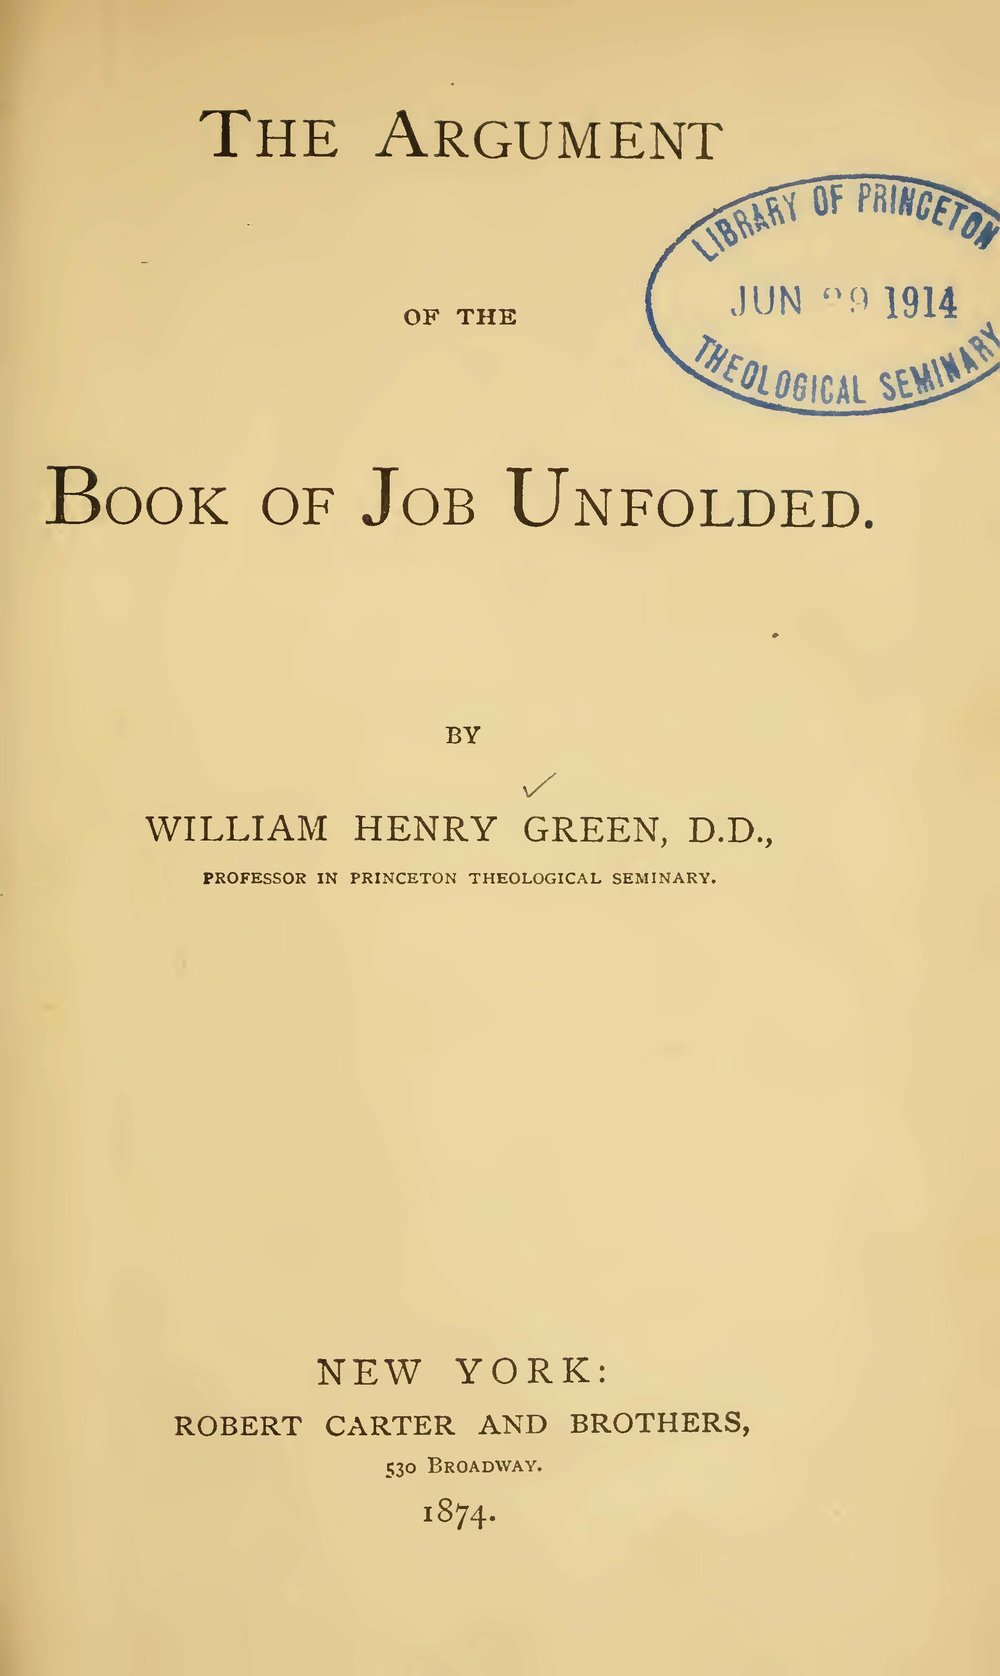 Green, William Henry, The Argument of the Book of Job Unfolded Title Page.jpg